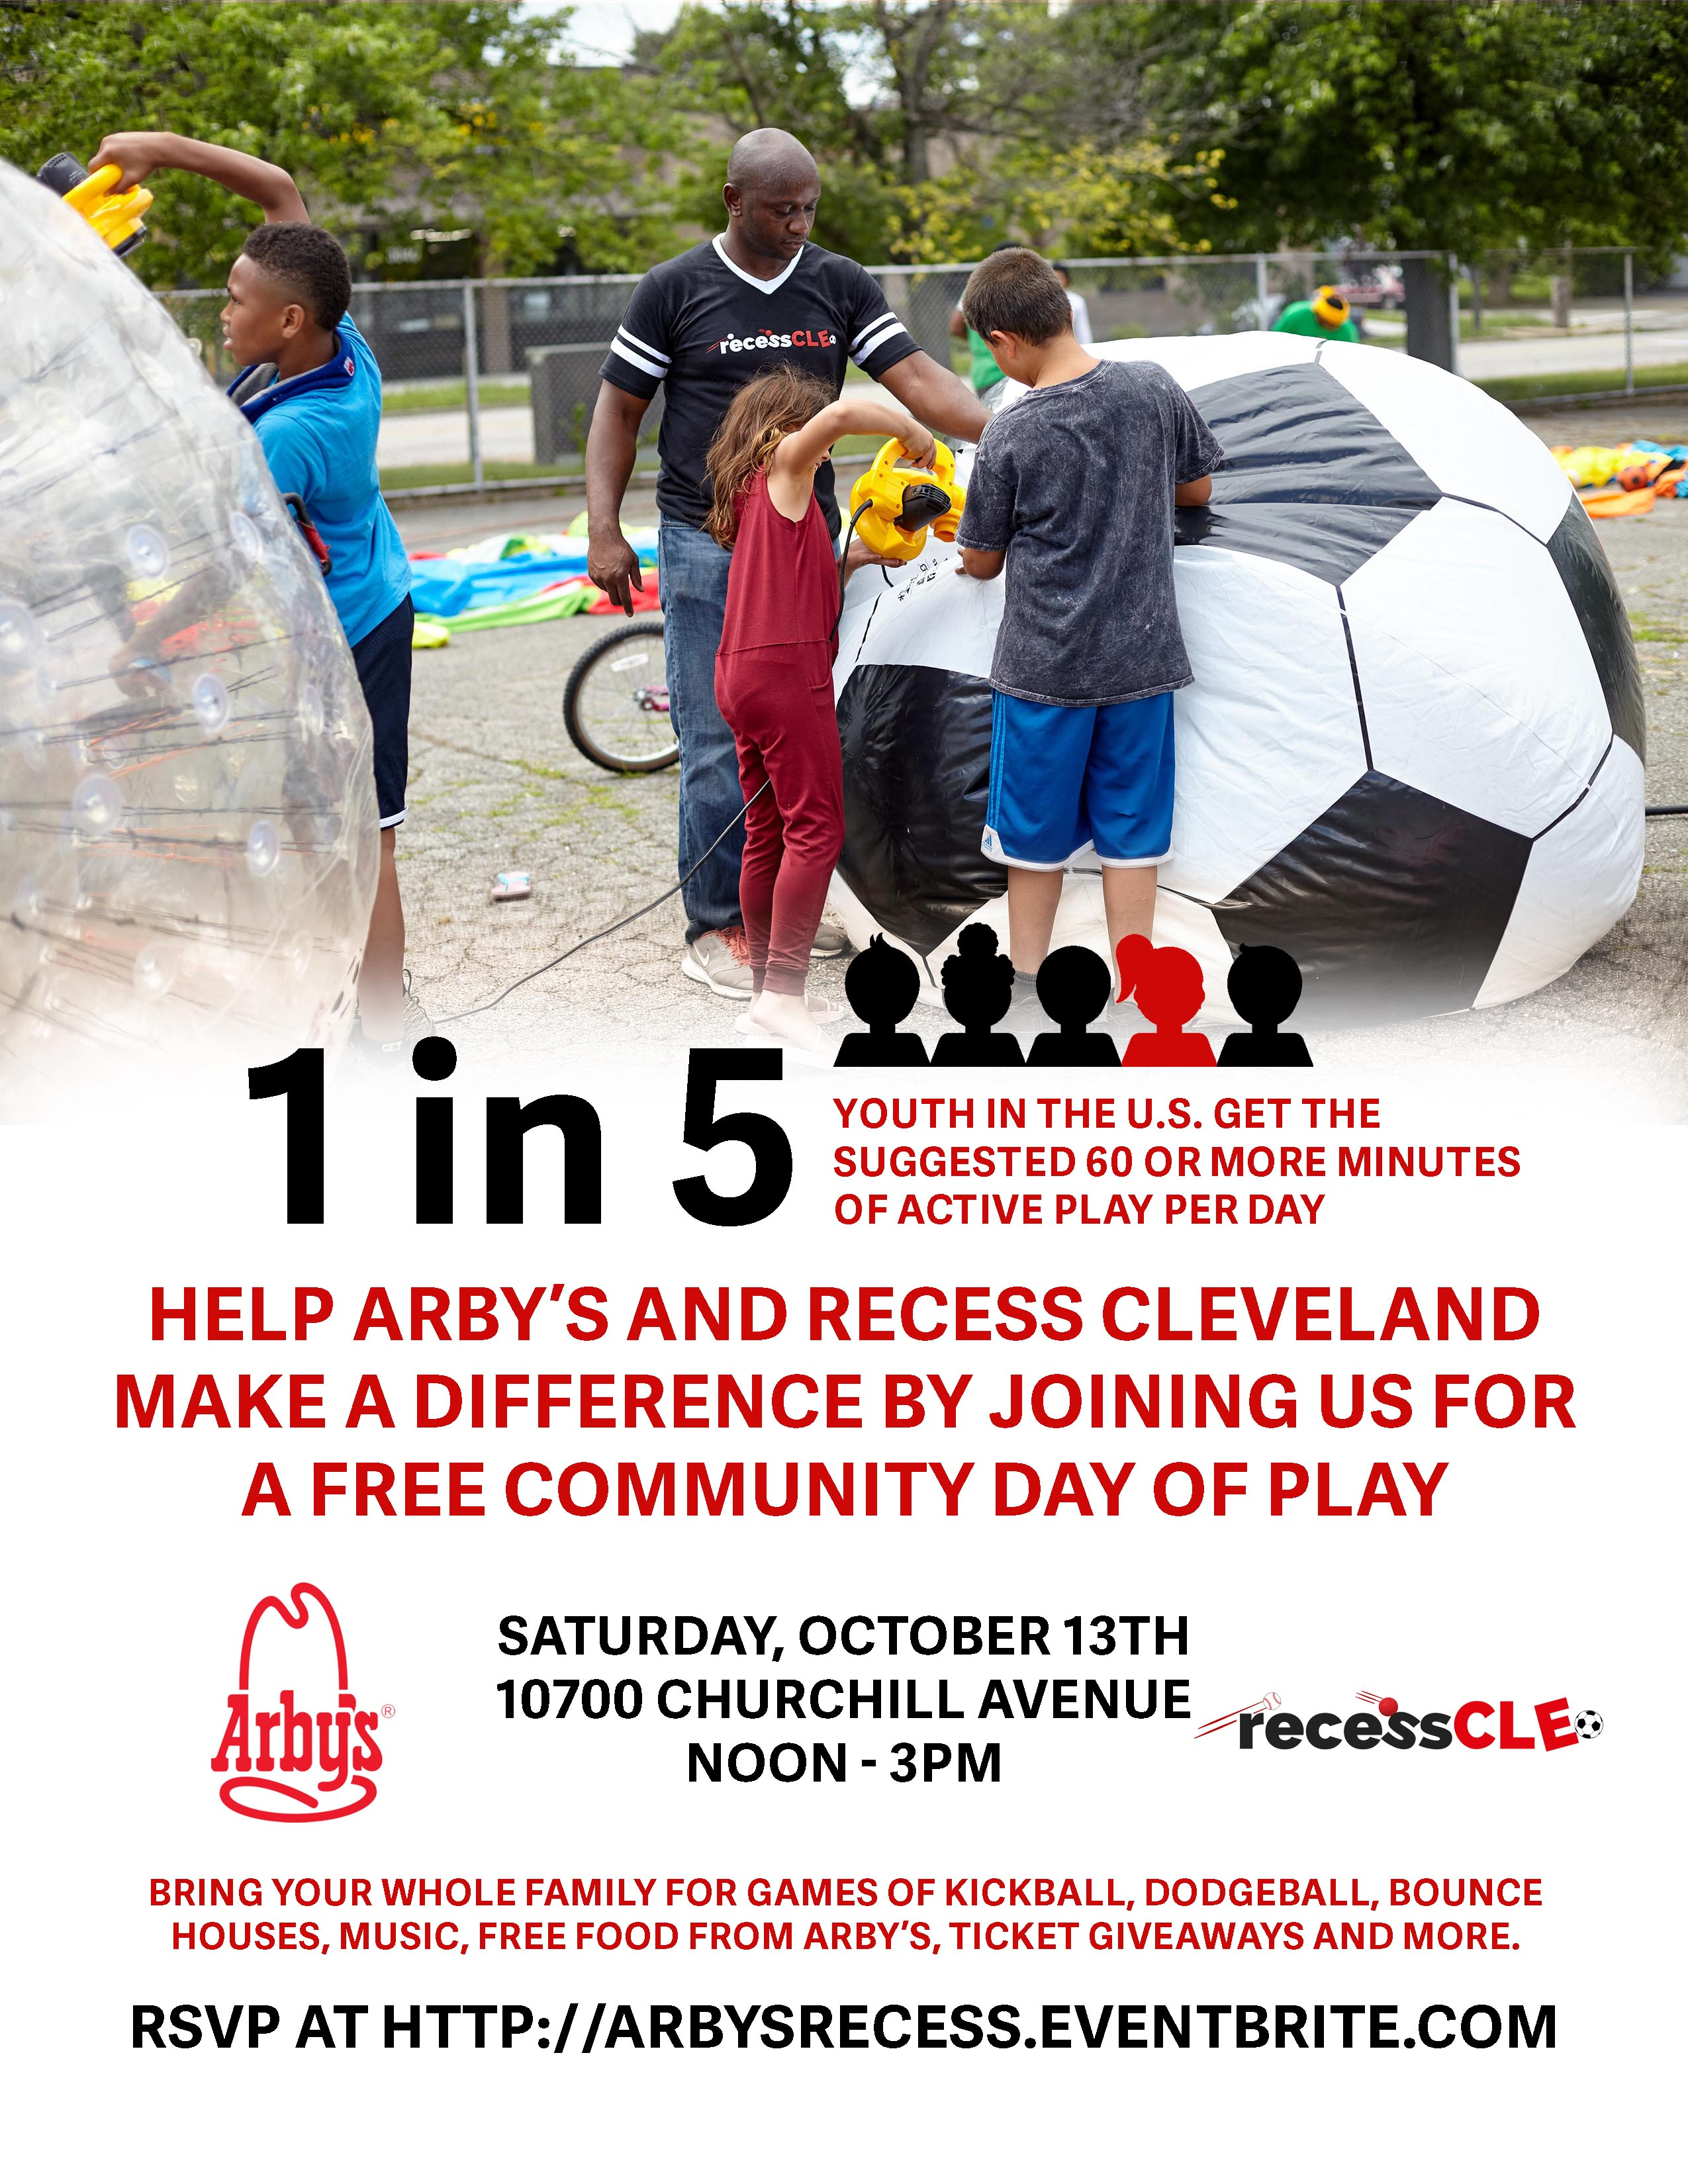 Make a difference day Arby's and Recess Cleveland